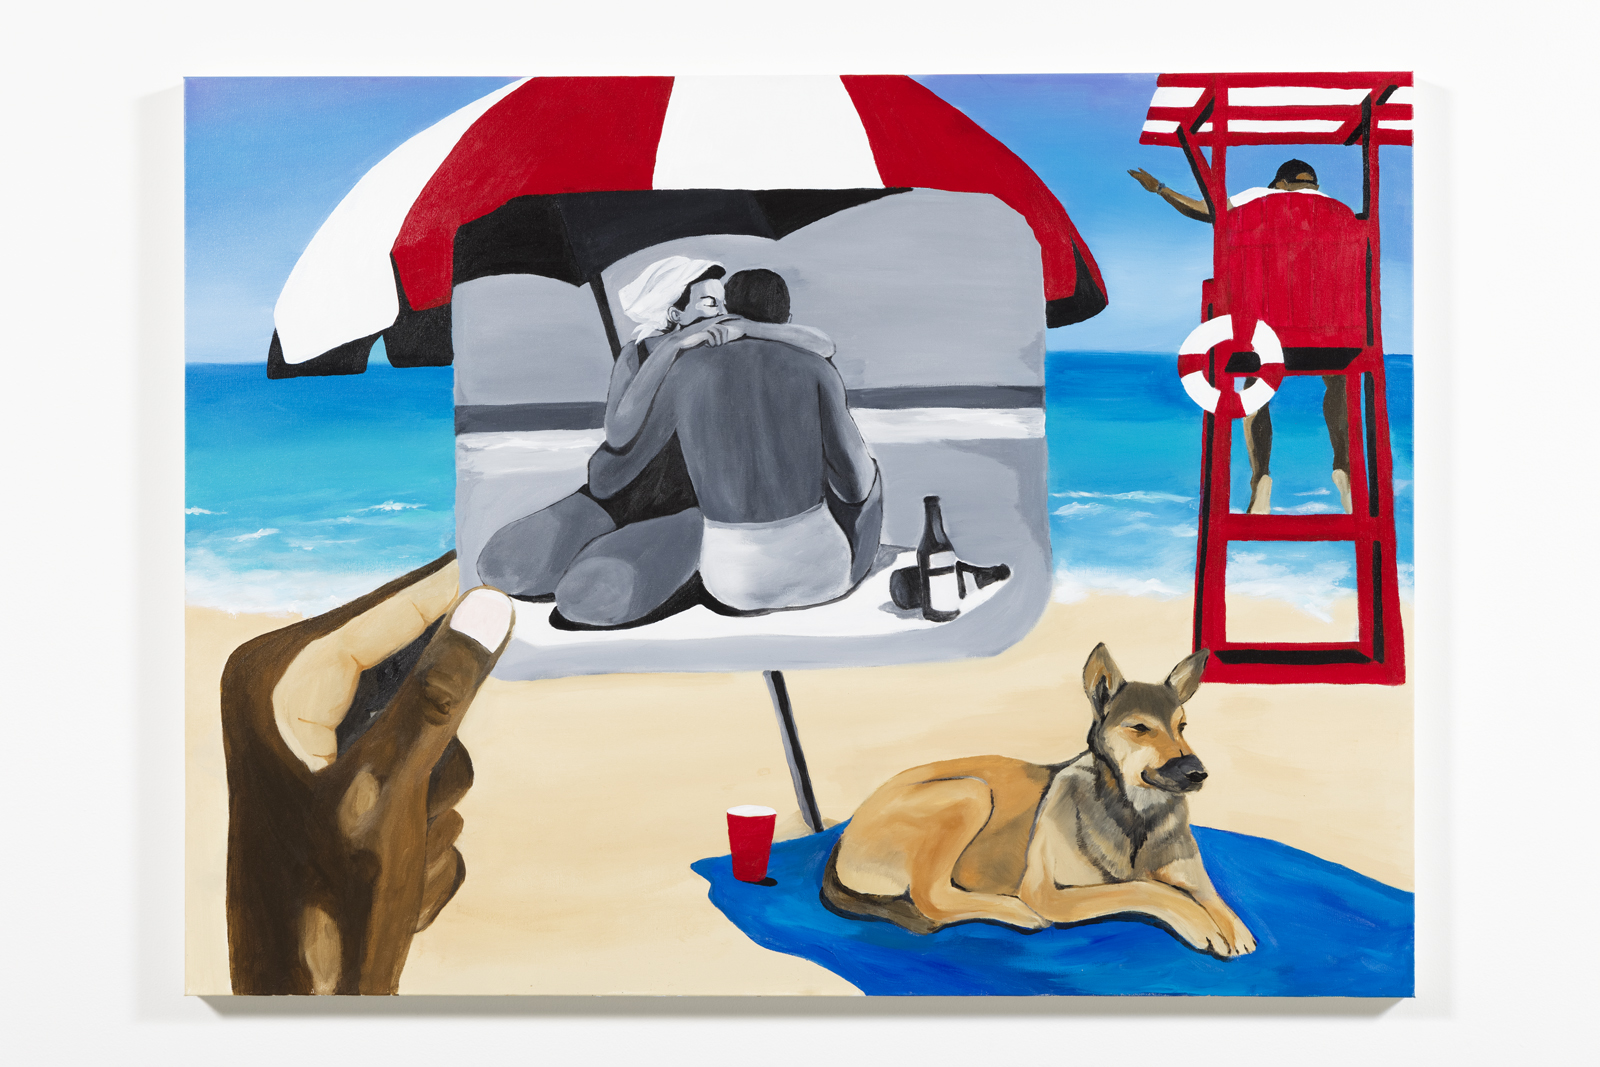 beach day by blitz bazawule, a painting of a beach with a dog and lifeguard stand and a hand holding up a black and white image of a couple embracing